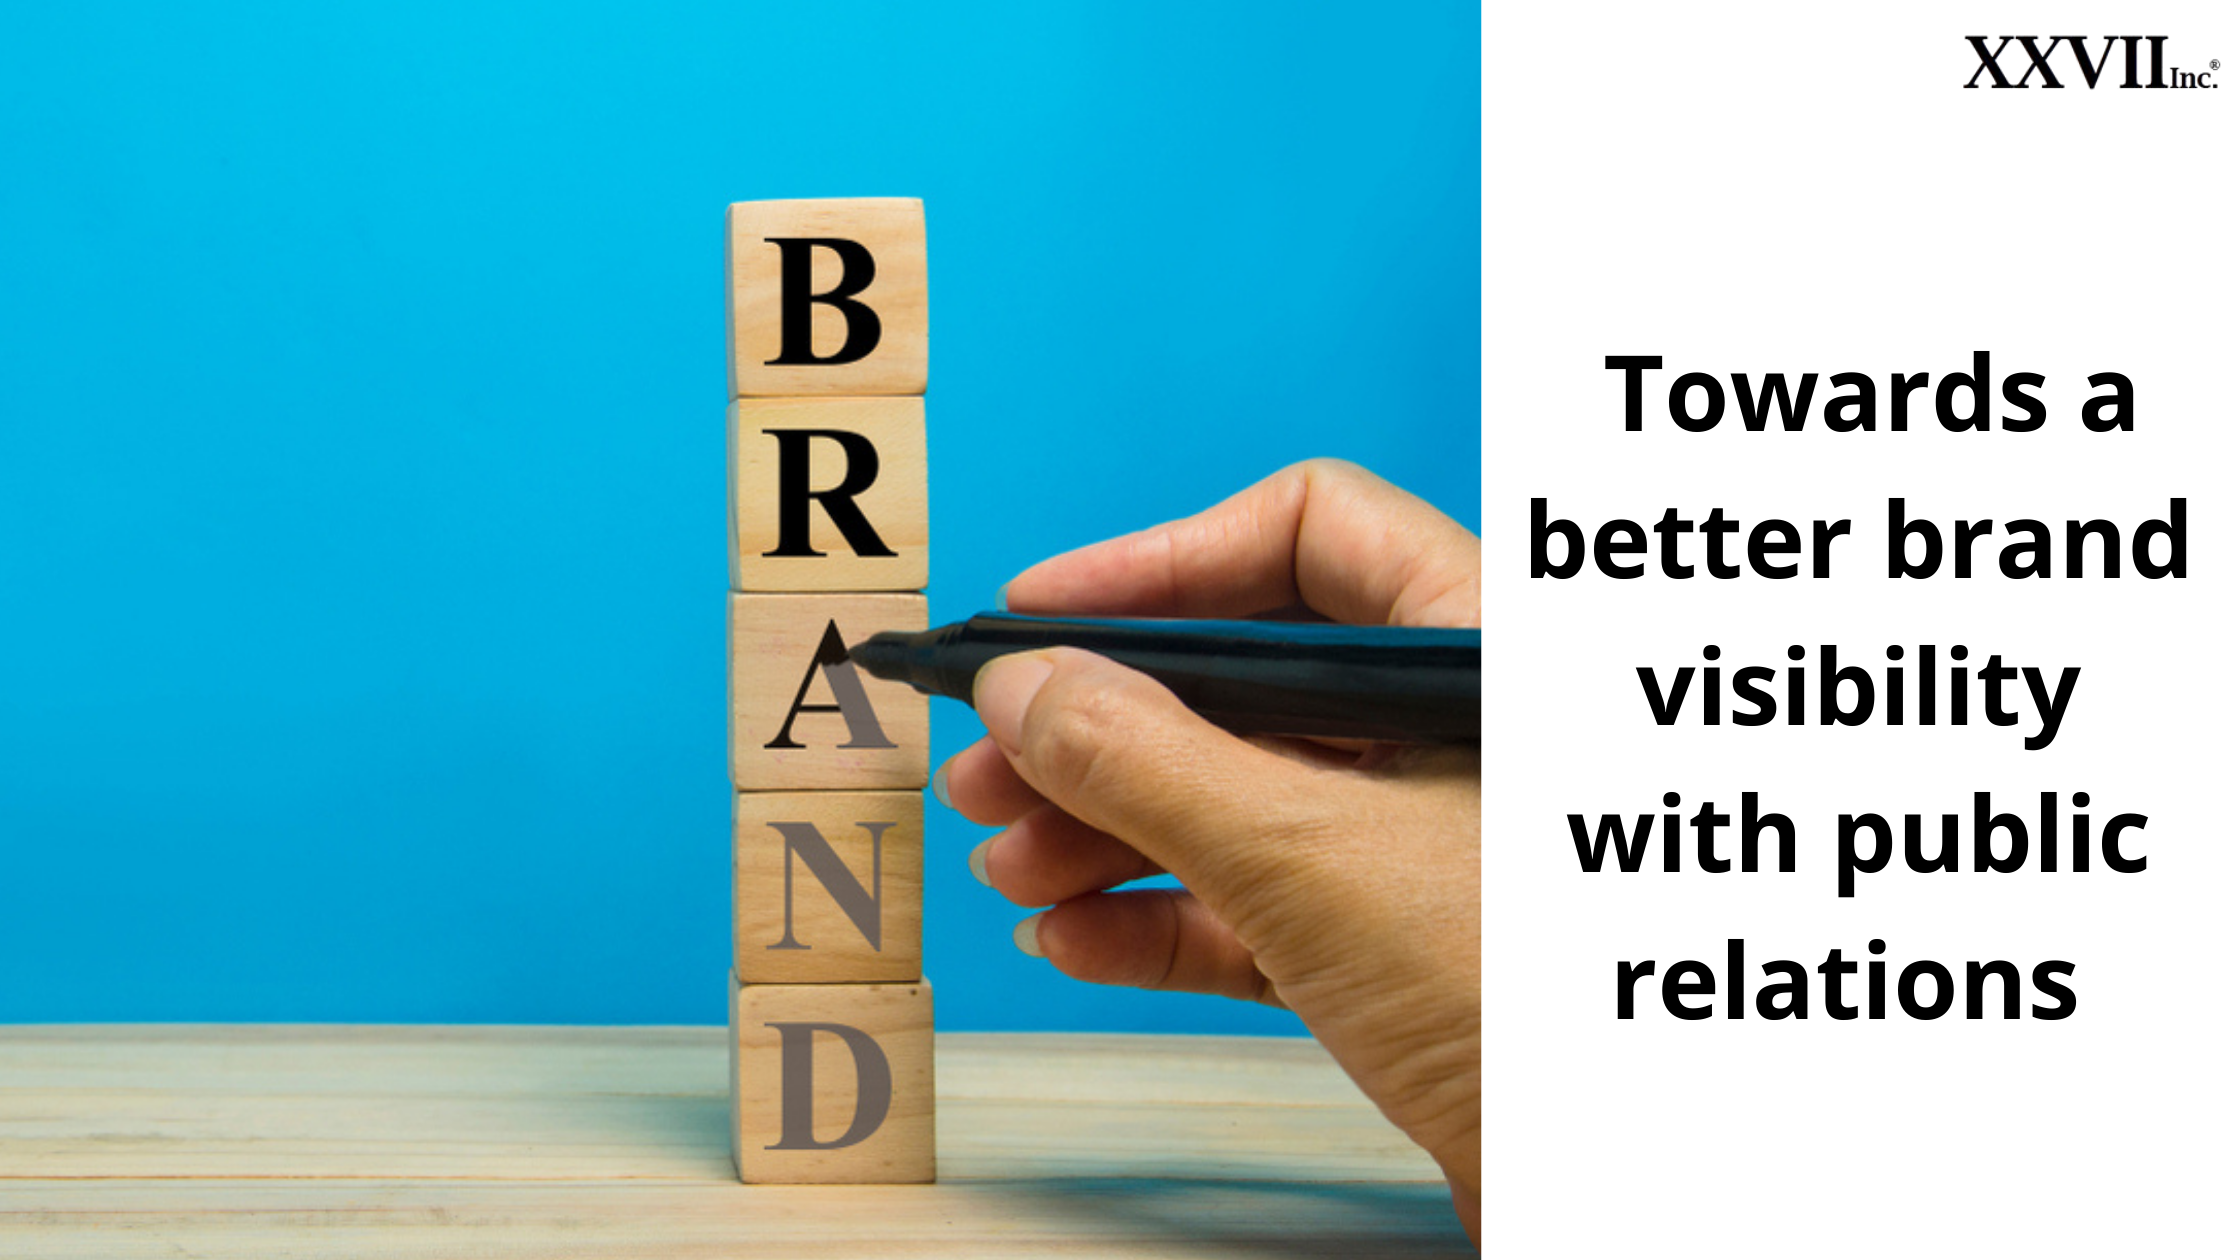 Towards a Better Brand Visibility With Public Relations